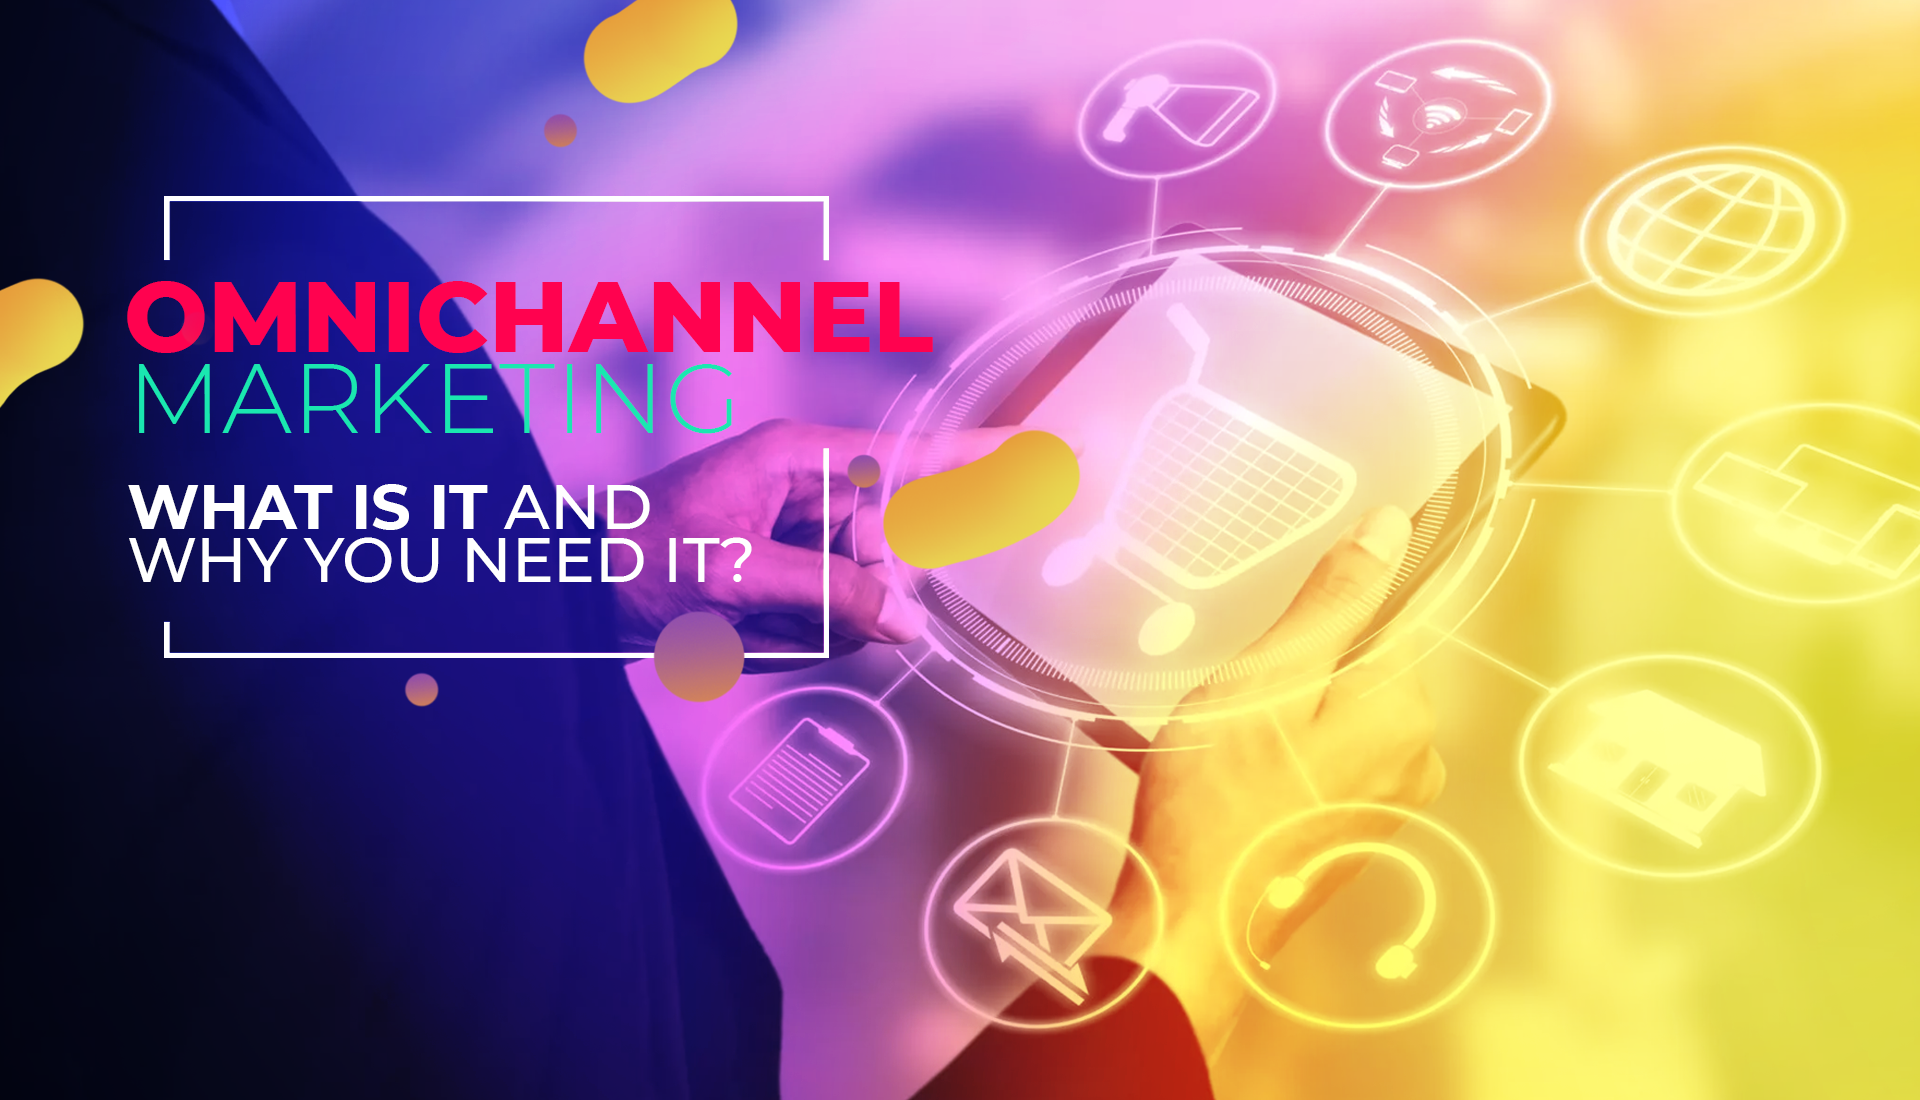 Omnichannel Marketing: What is it and Why you need it?